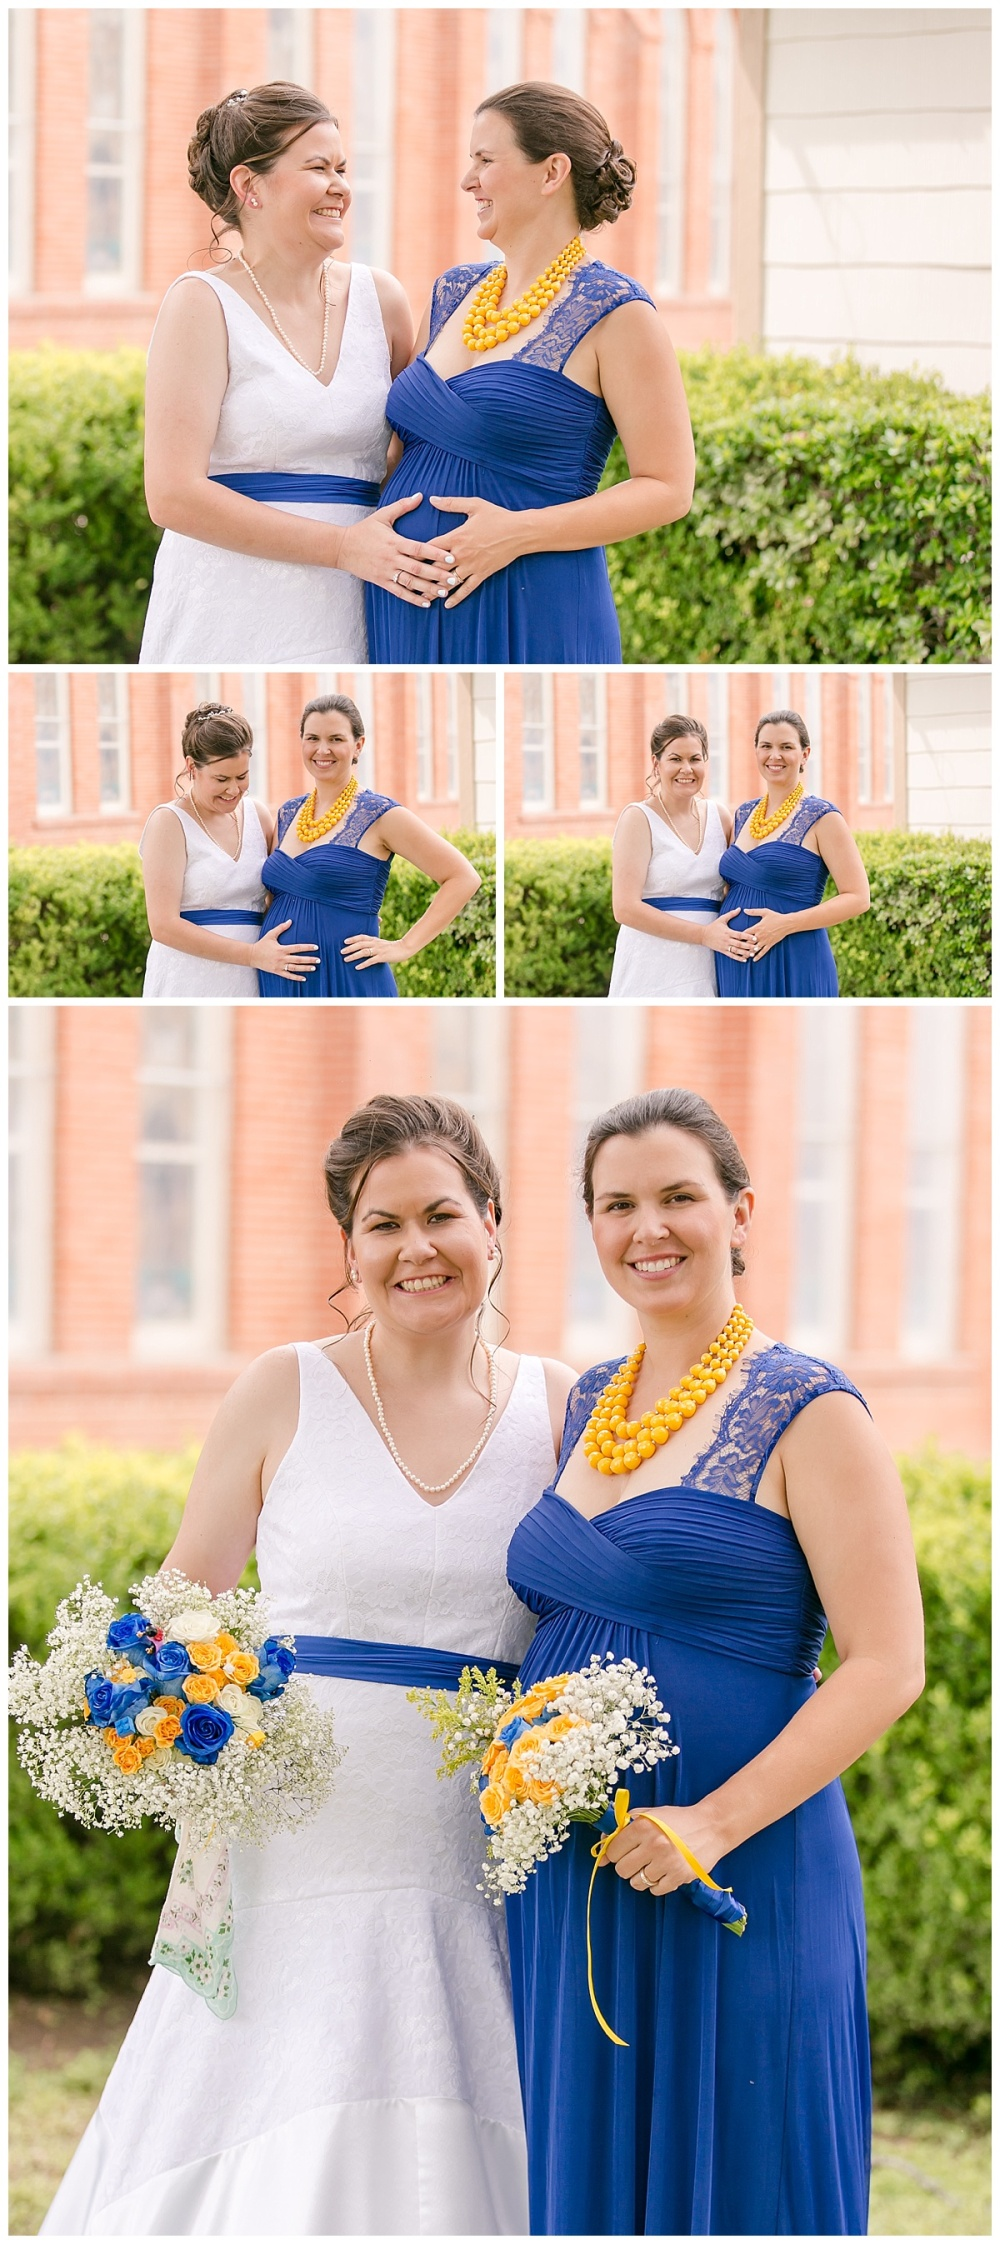 Texas-Wedding-Photographer-La-Coste-Our-Lady-Of-Grace-Church-Bride-Groom-Lego-Theme-Carly-Barton-Photography_0041.jpg